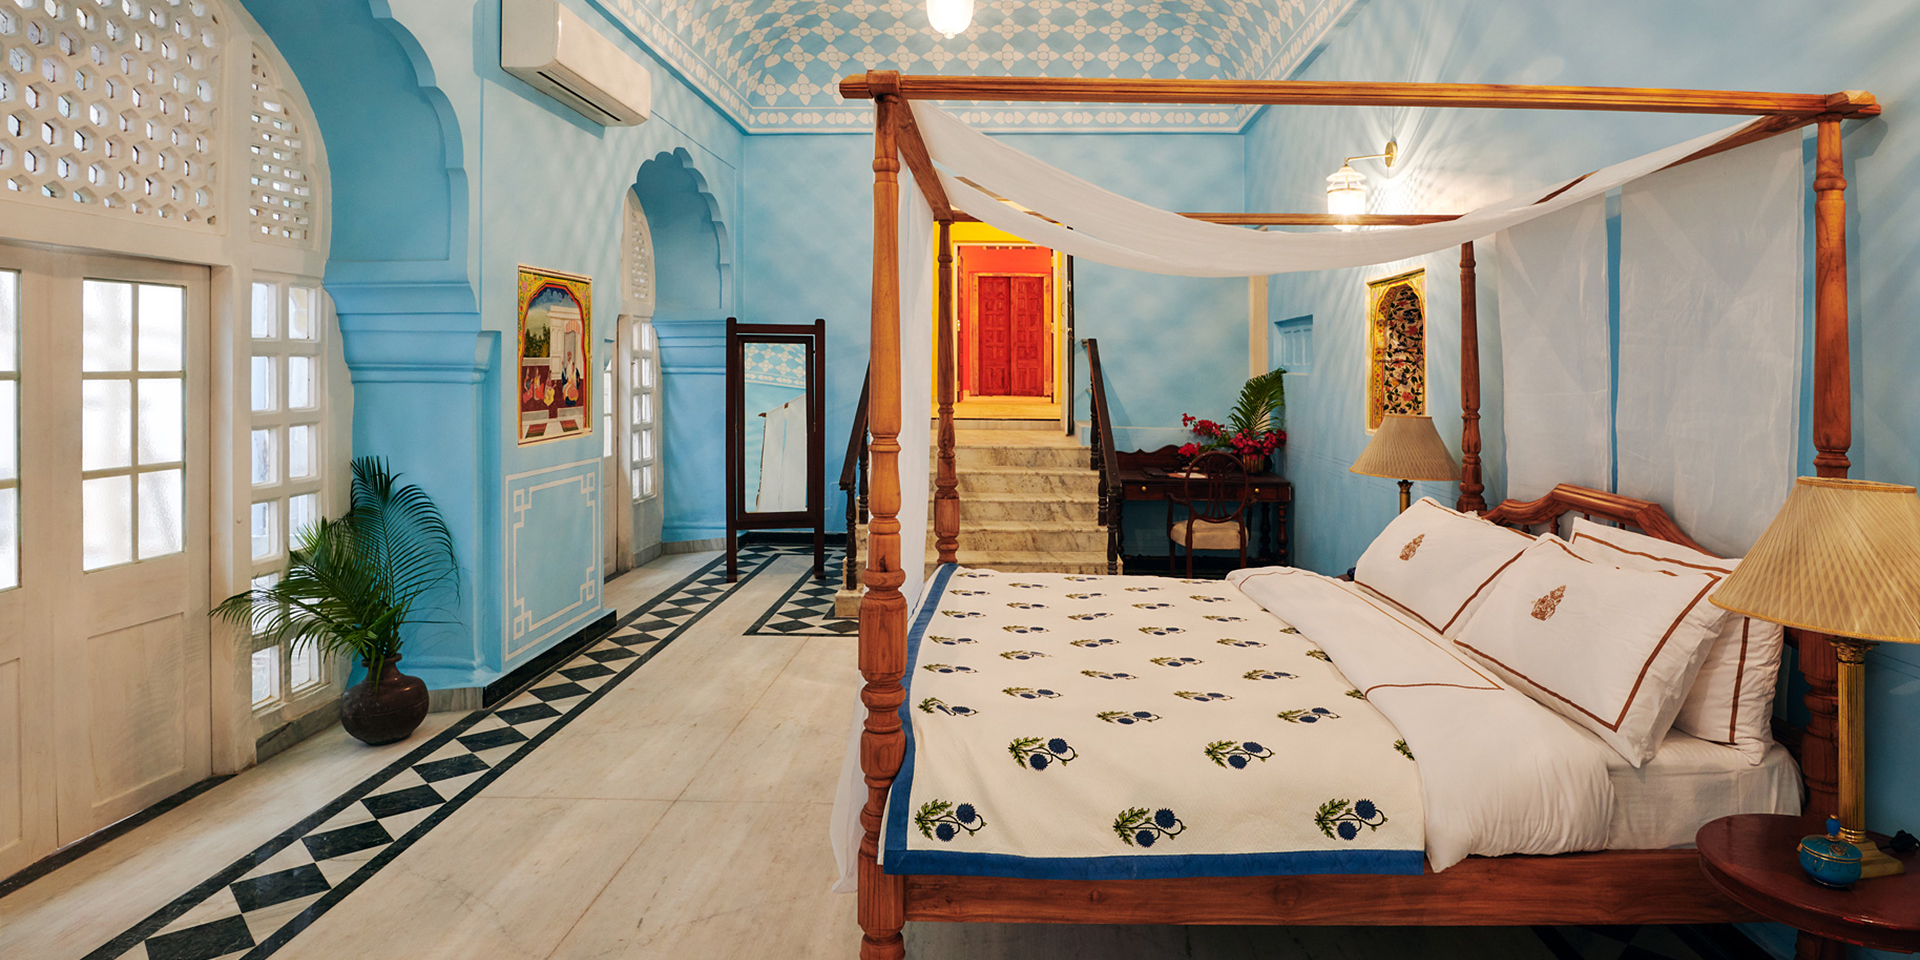 airbnb-city-palace-jaipur-india